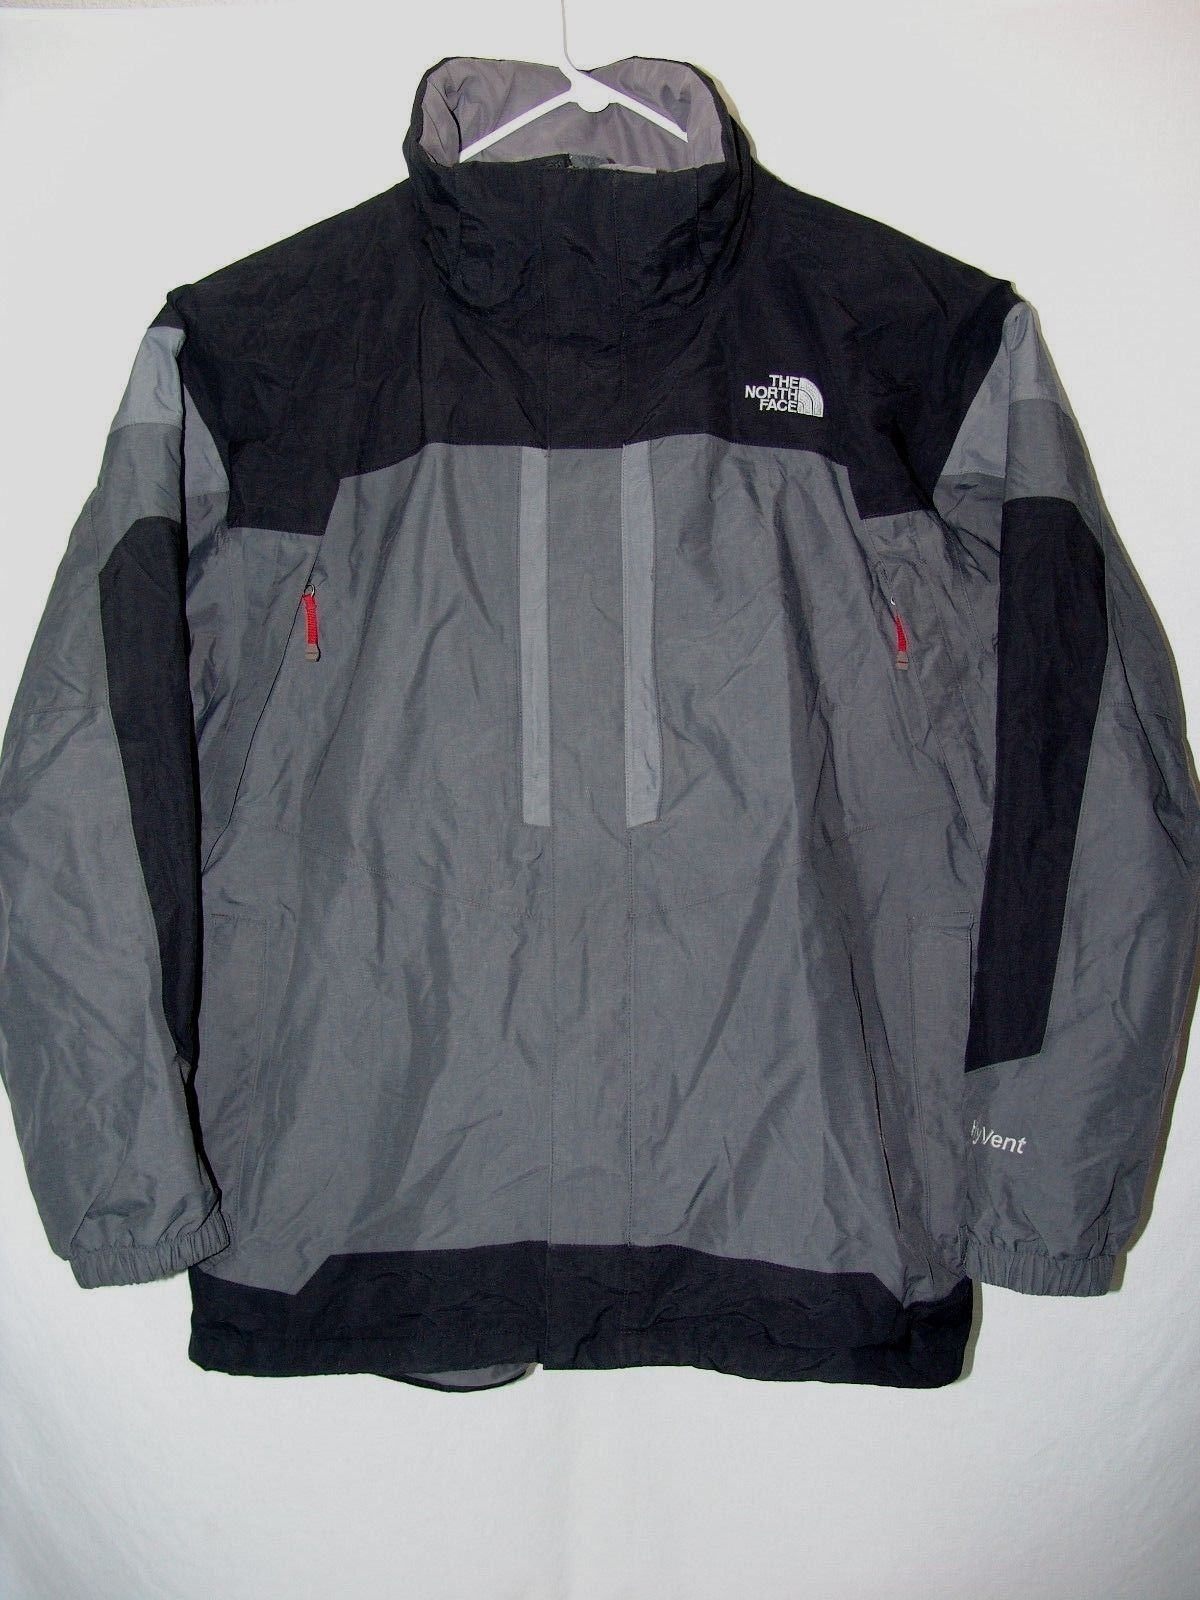 The North Face Hyvent Mens Xxl Jacket Shell Coat No Hood No Liner Ebay North Face Hyvent Jacket Jackets North Face Hyvent [ 1600 x 1200 Pixel ]